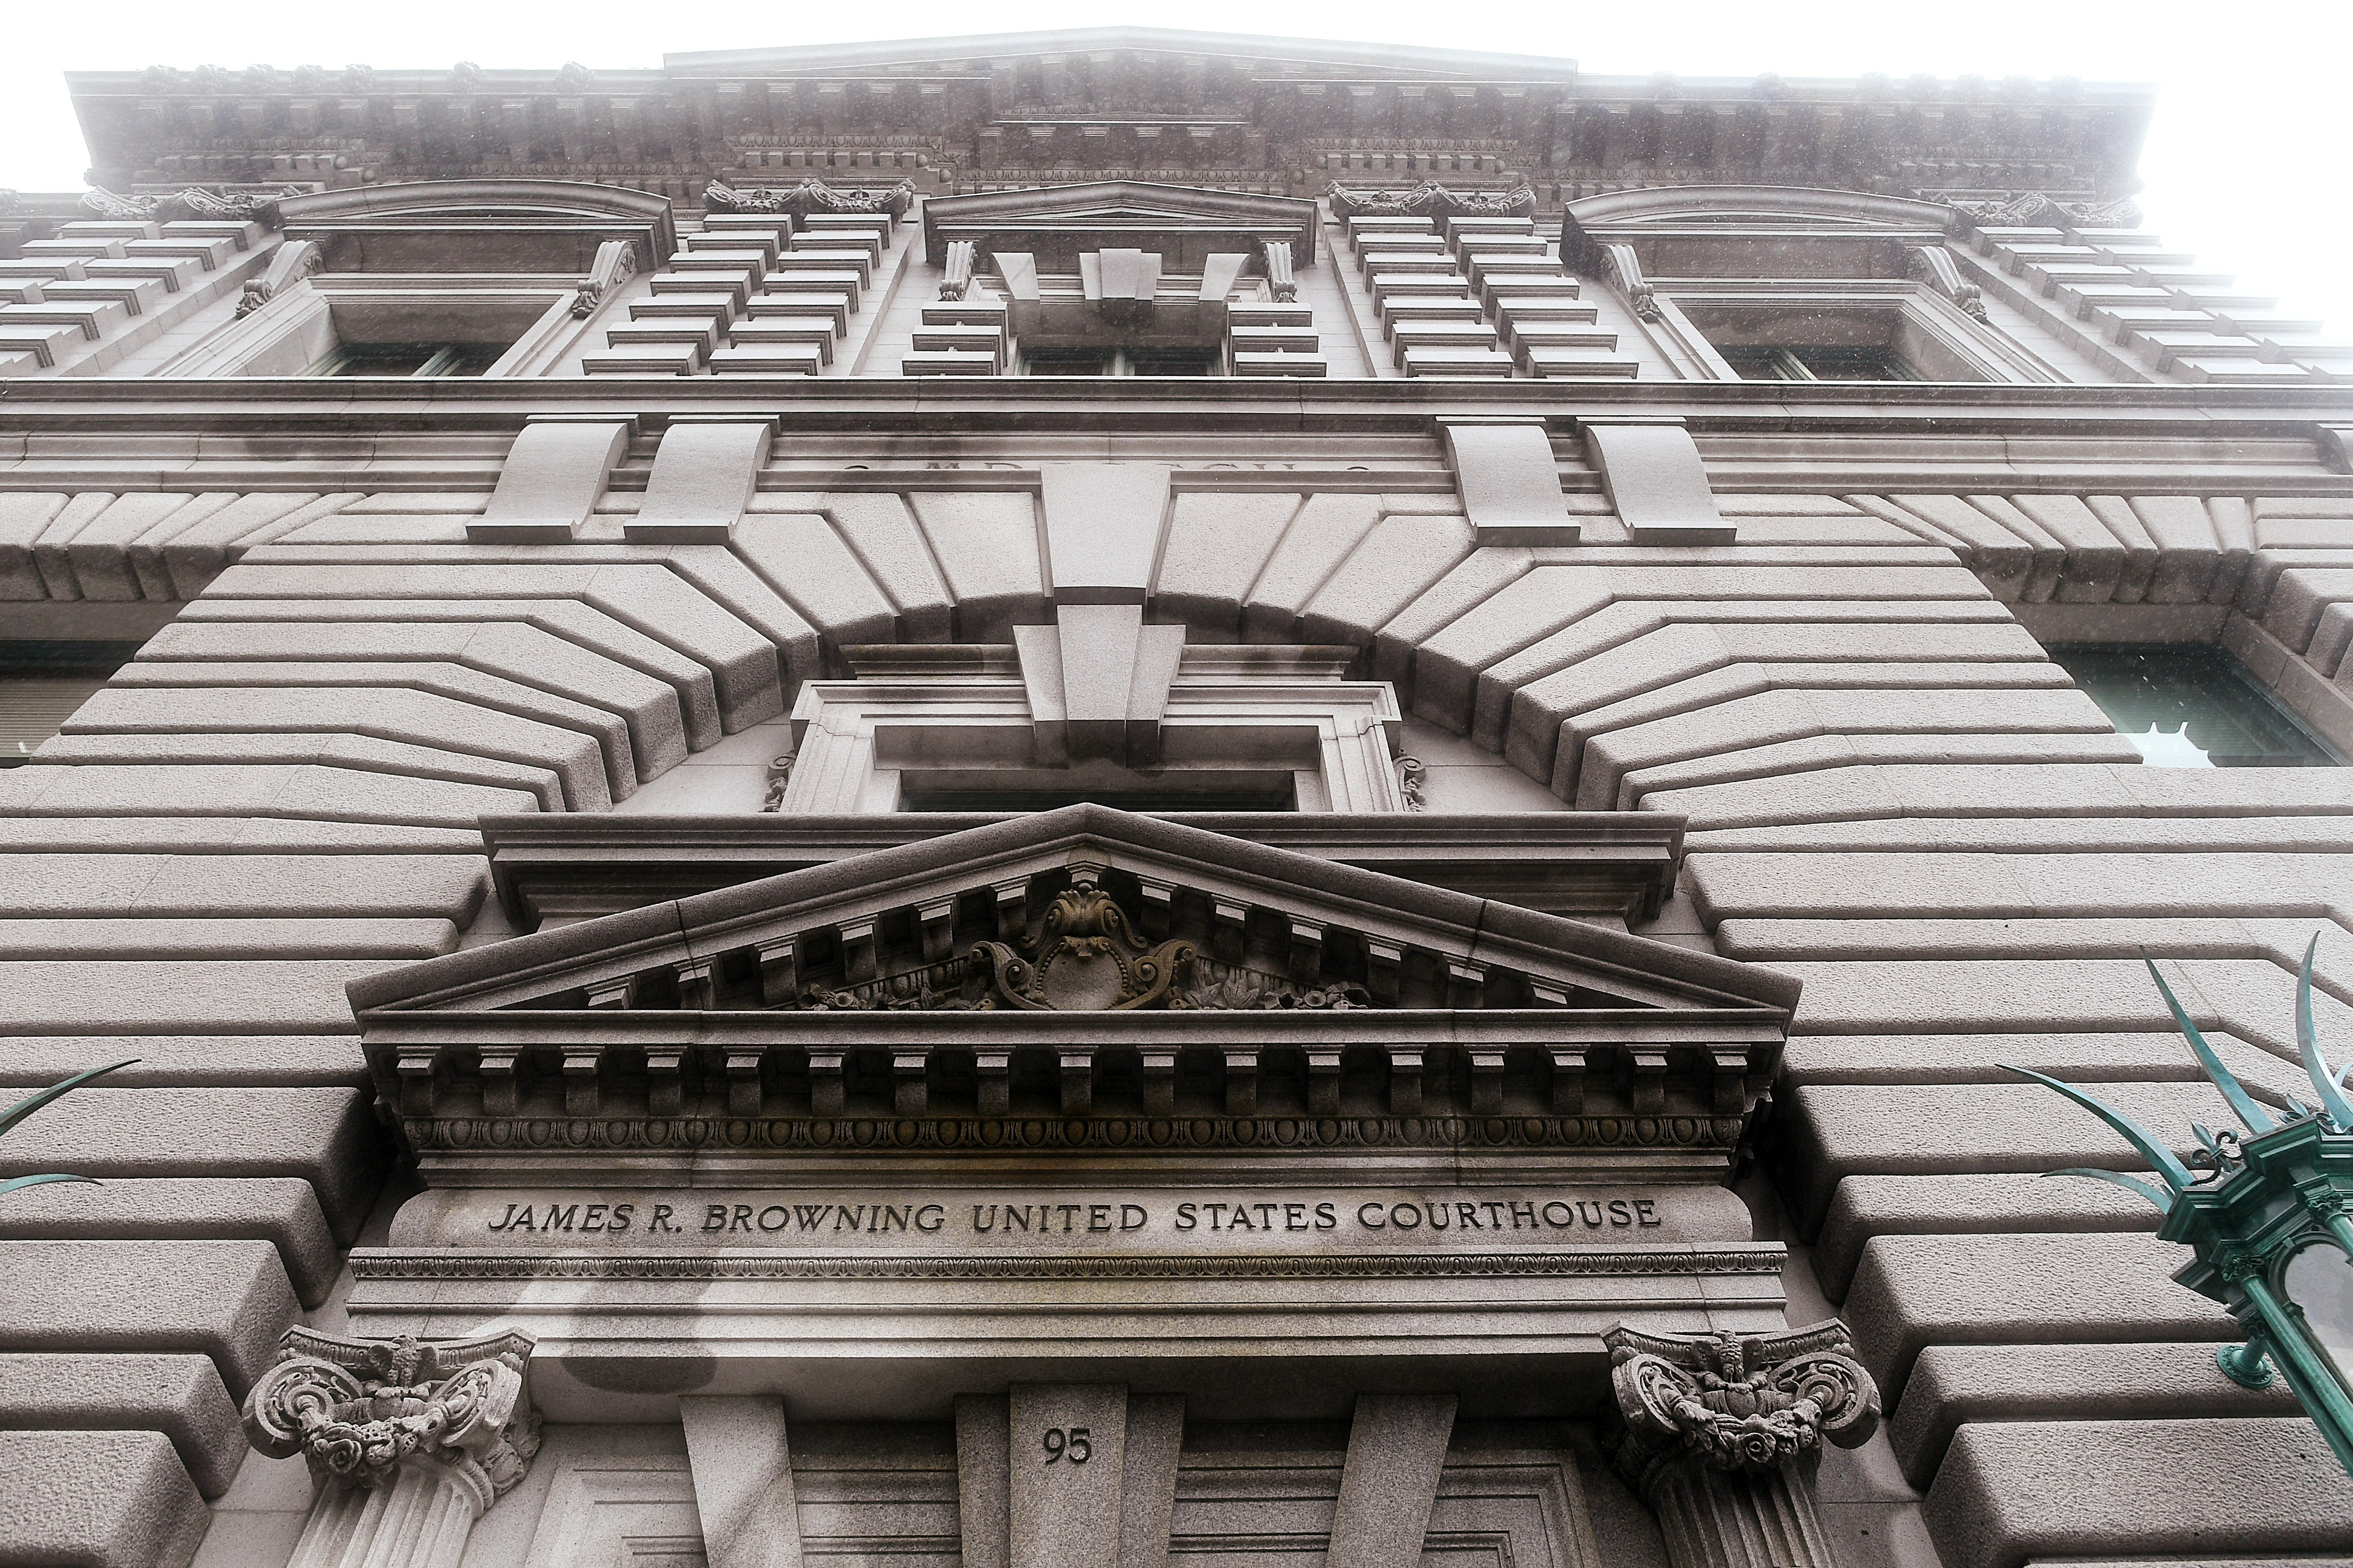 The James R. Browning U.S. Court of Appeals Building, home of the 9th U.S. Circuit Court of Appeals, is pictured in San Francisco, California February 7, 2017. REUTERS/Noah Berger